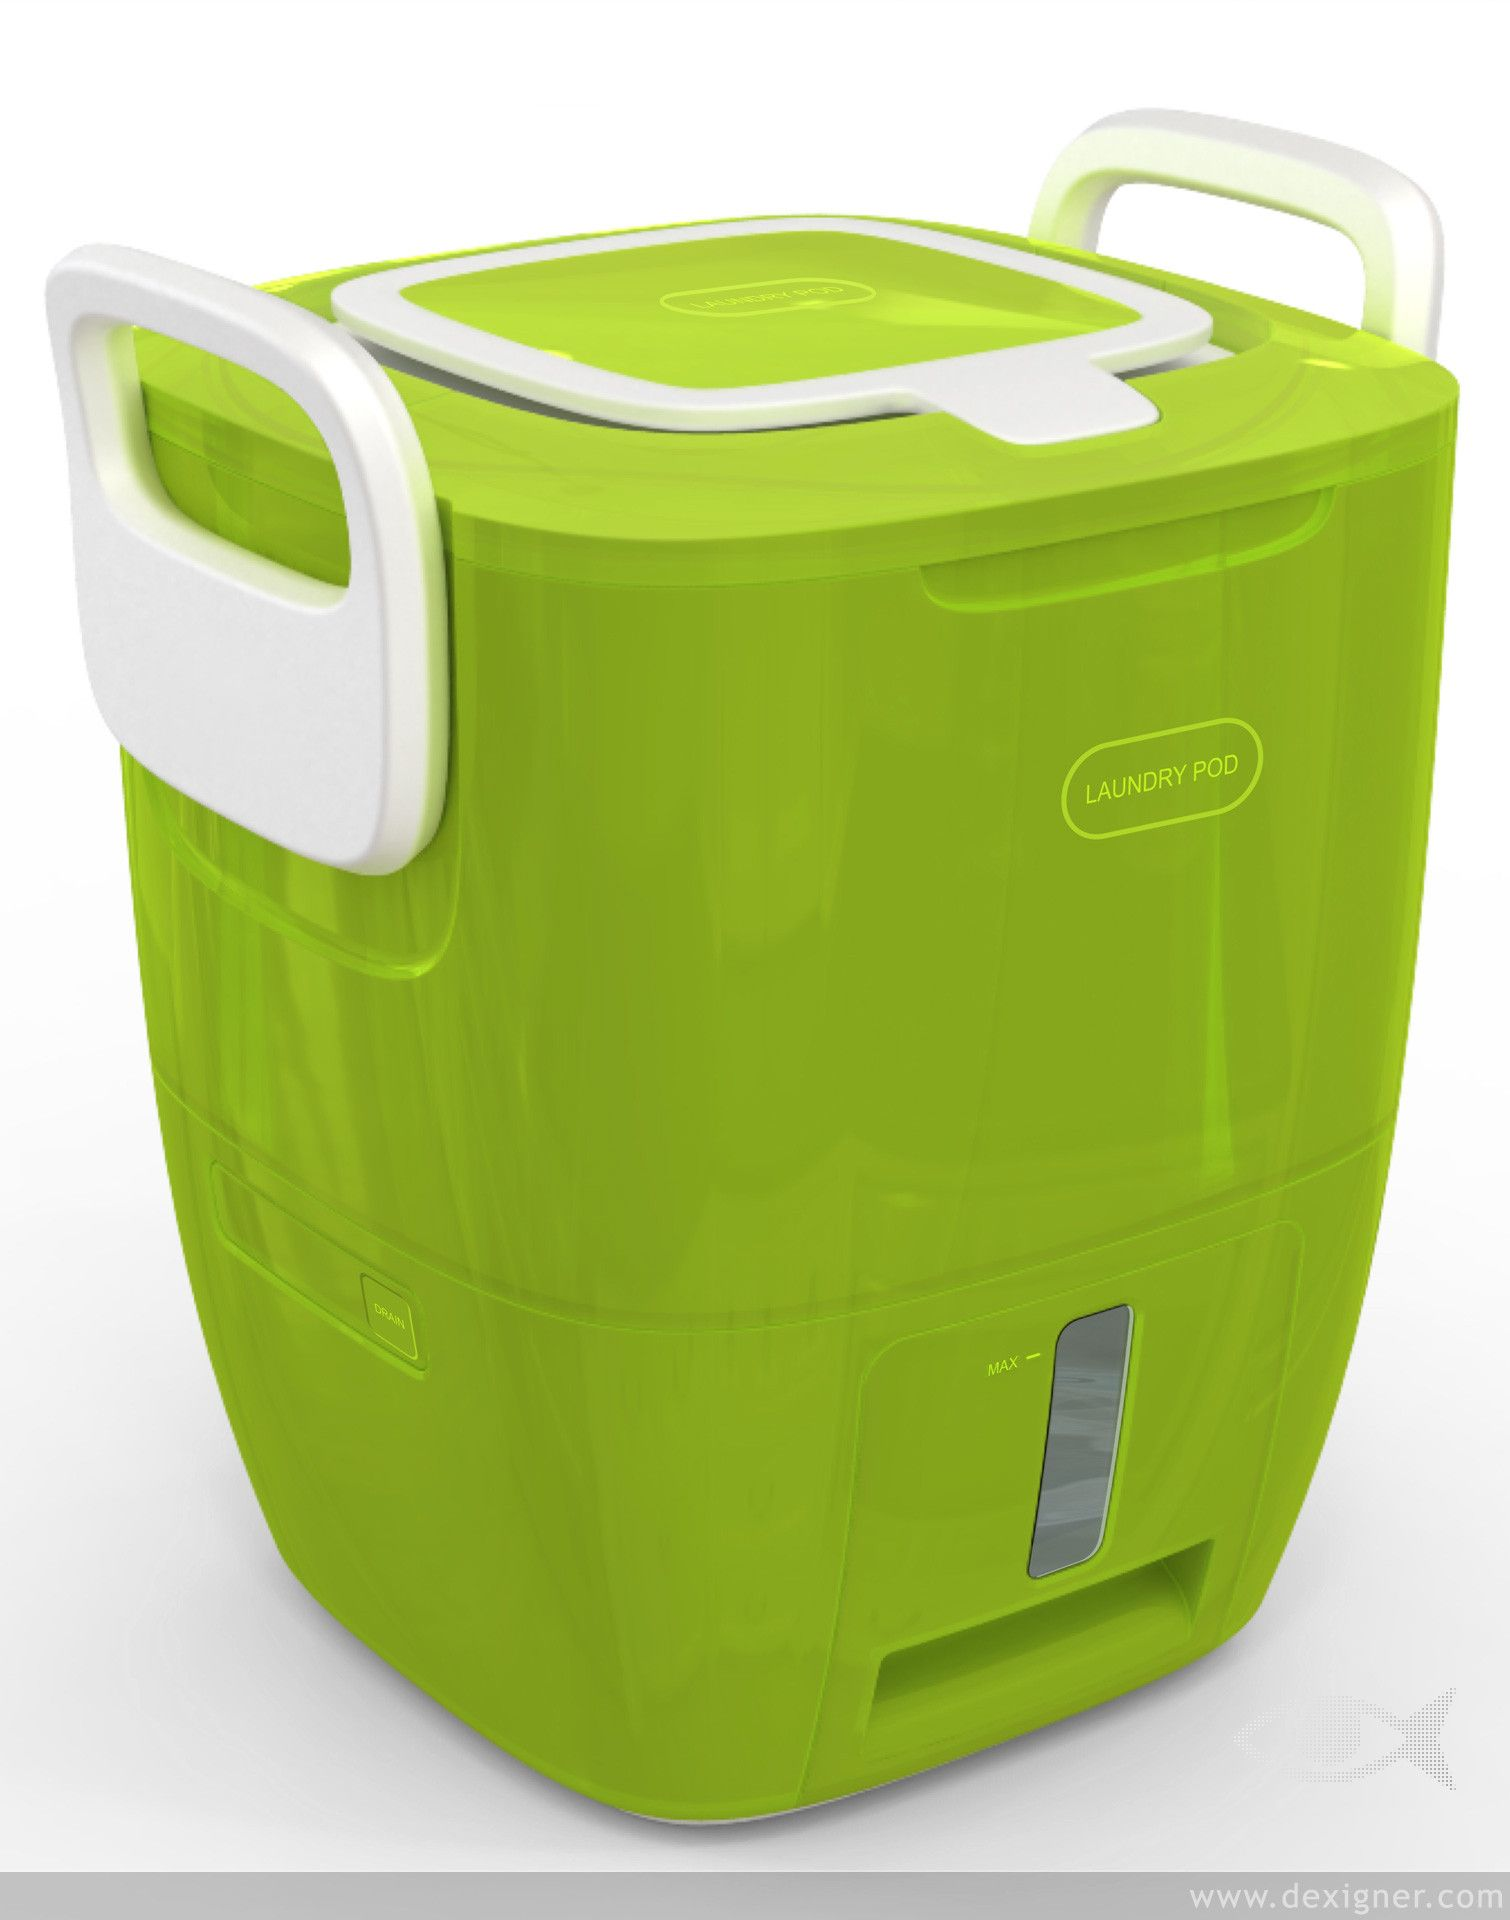 Laundry Pod Rks Inspires A New Way To See Green Laundry Pods